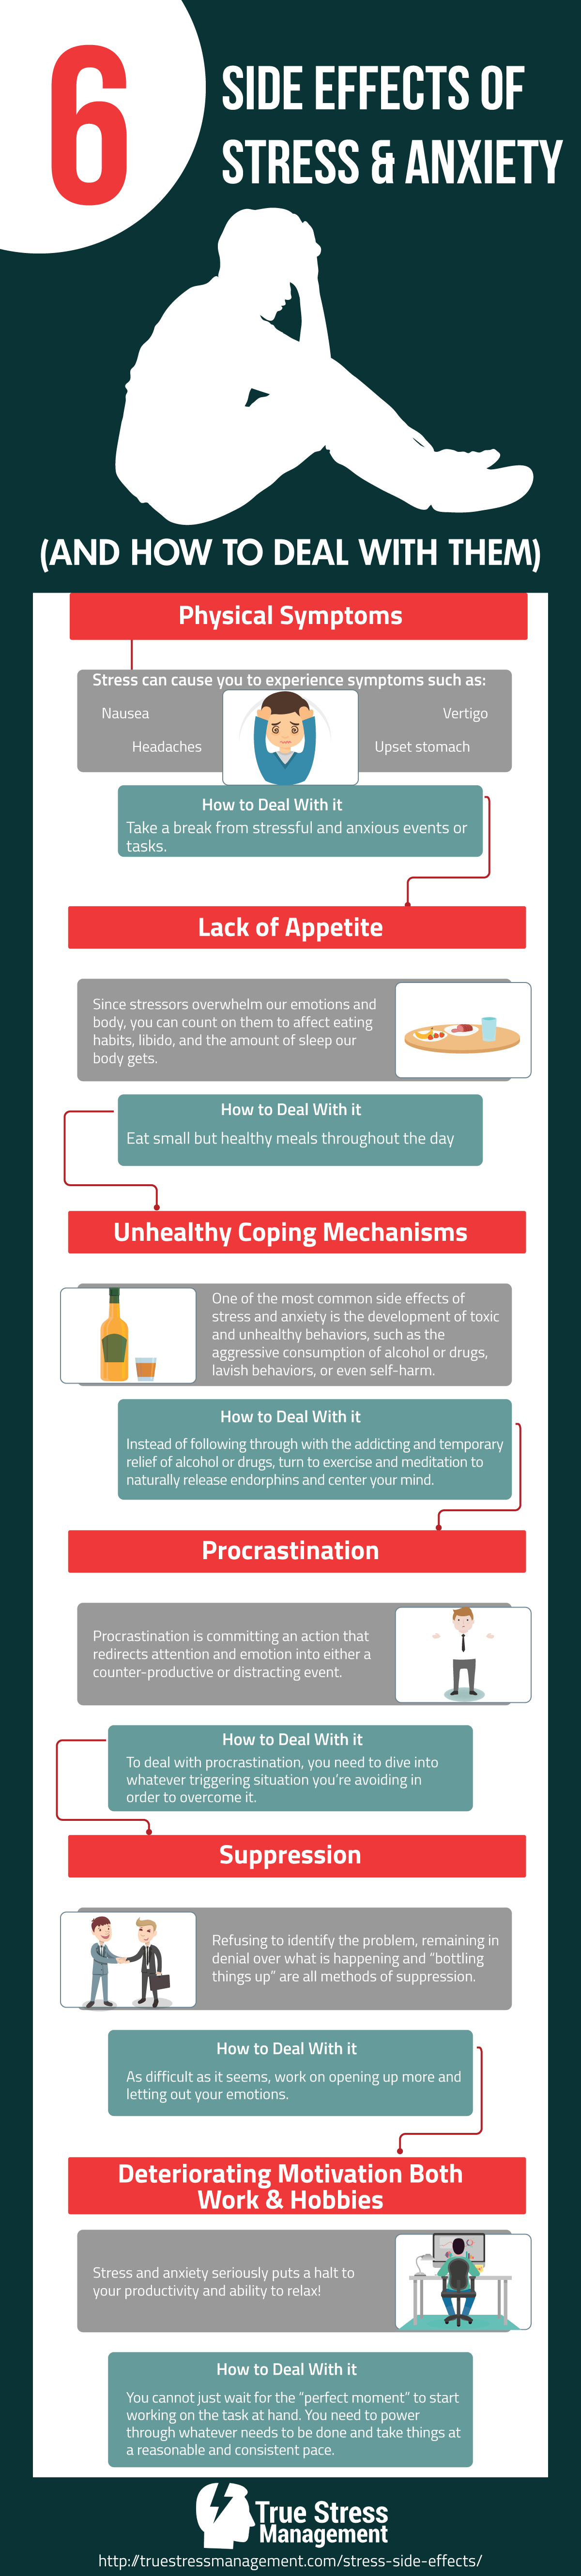 stress anxiety side effects infographic